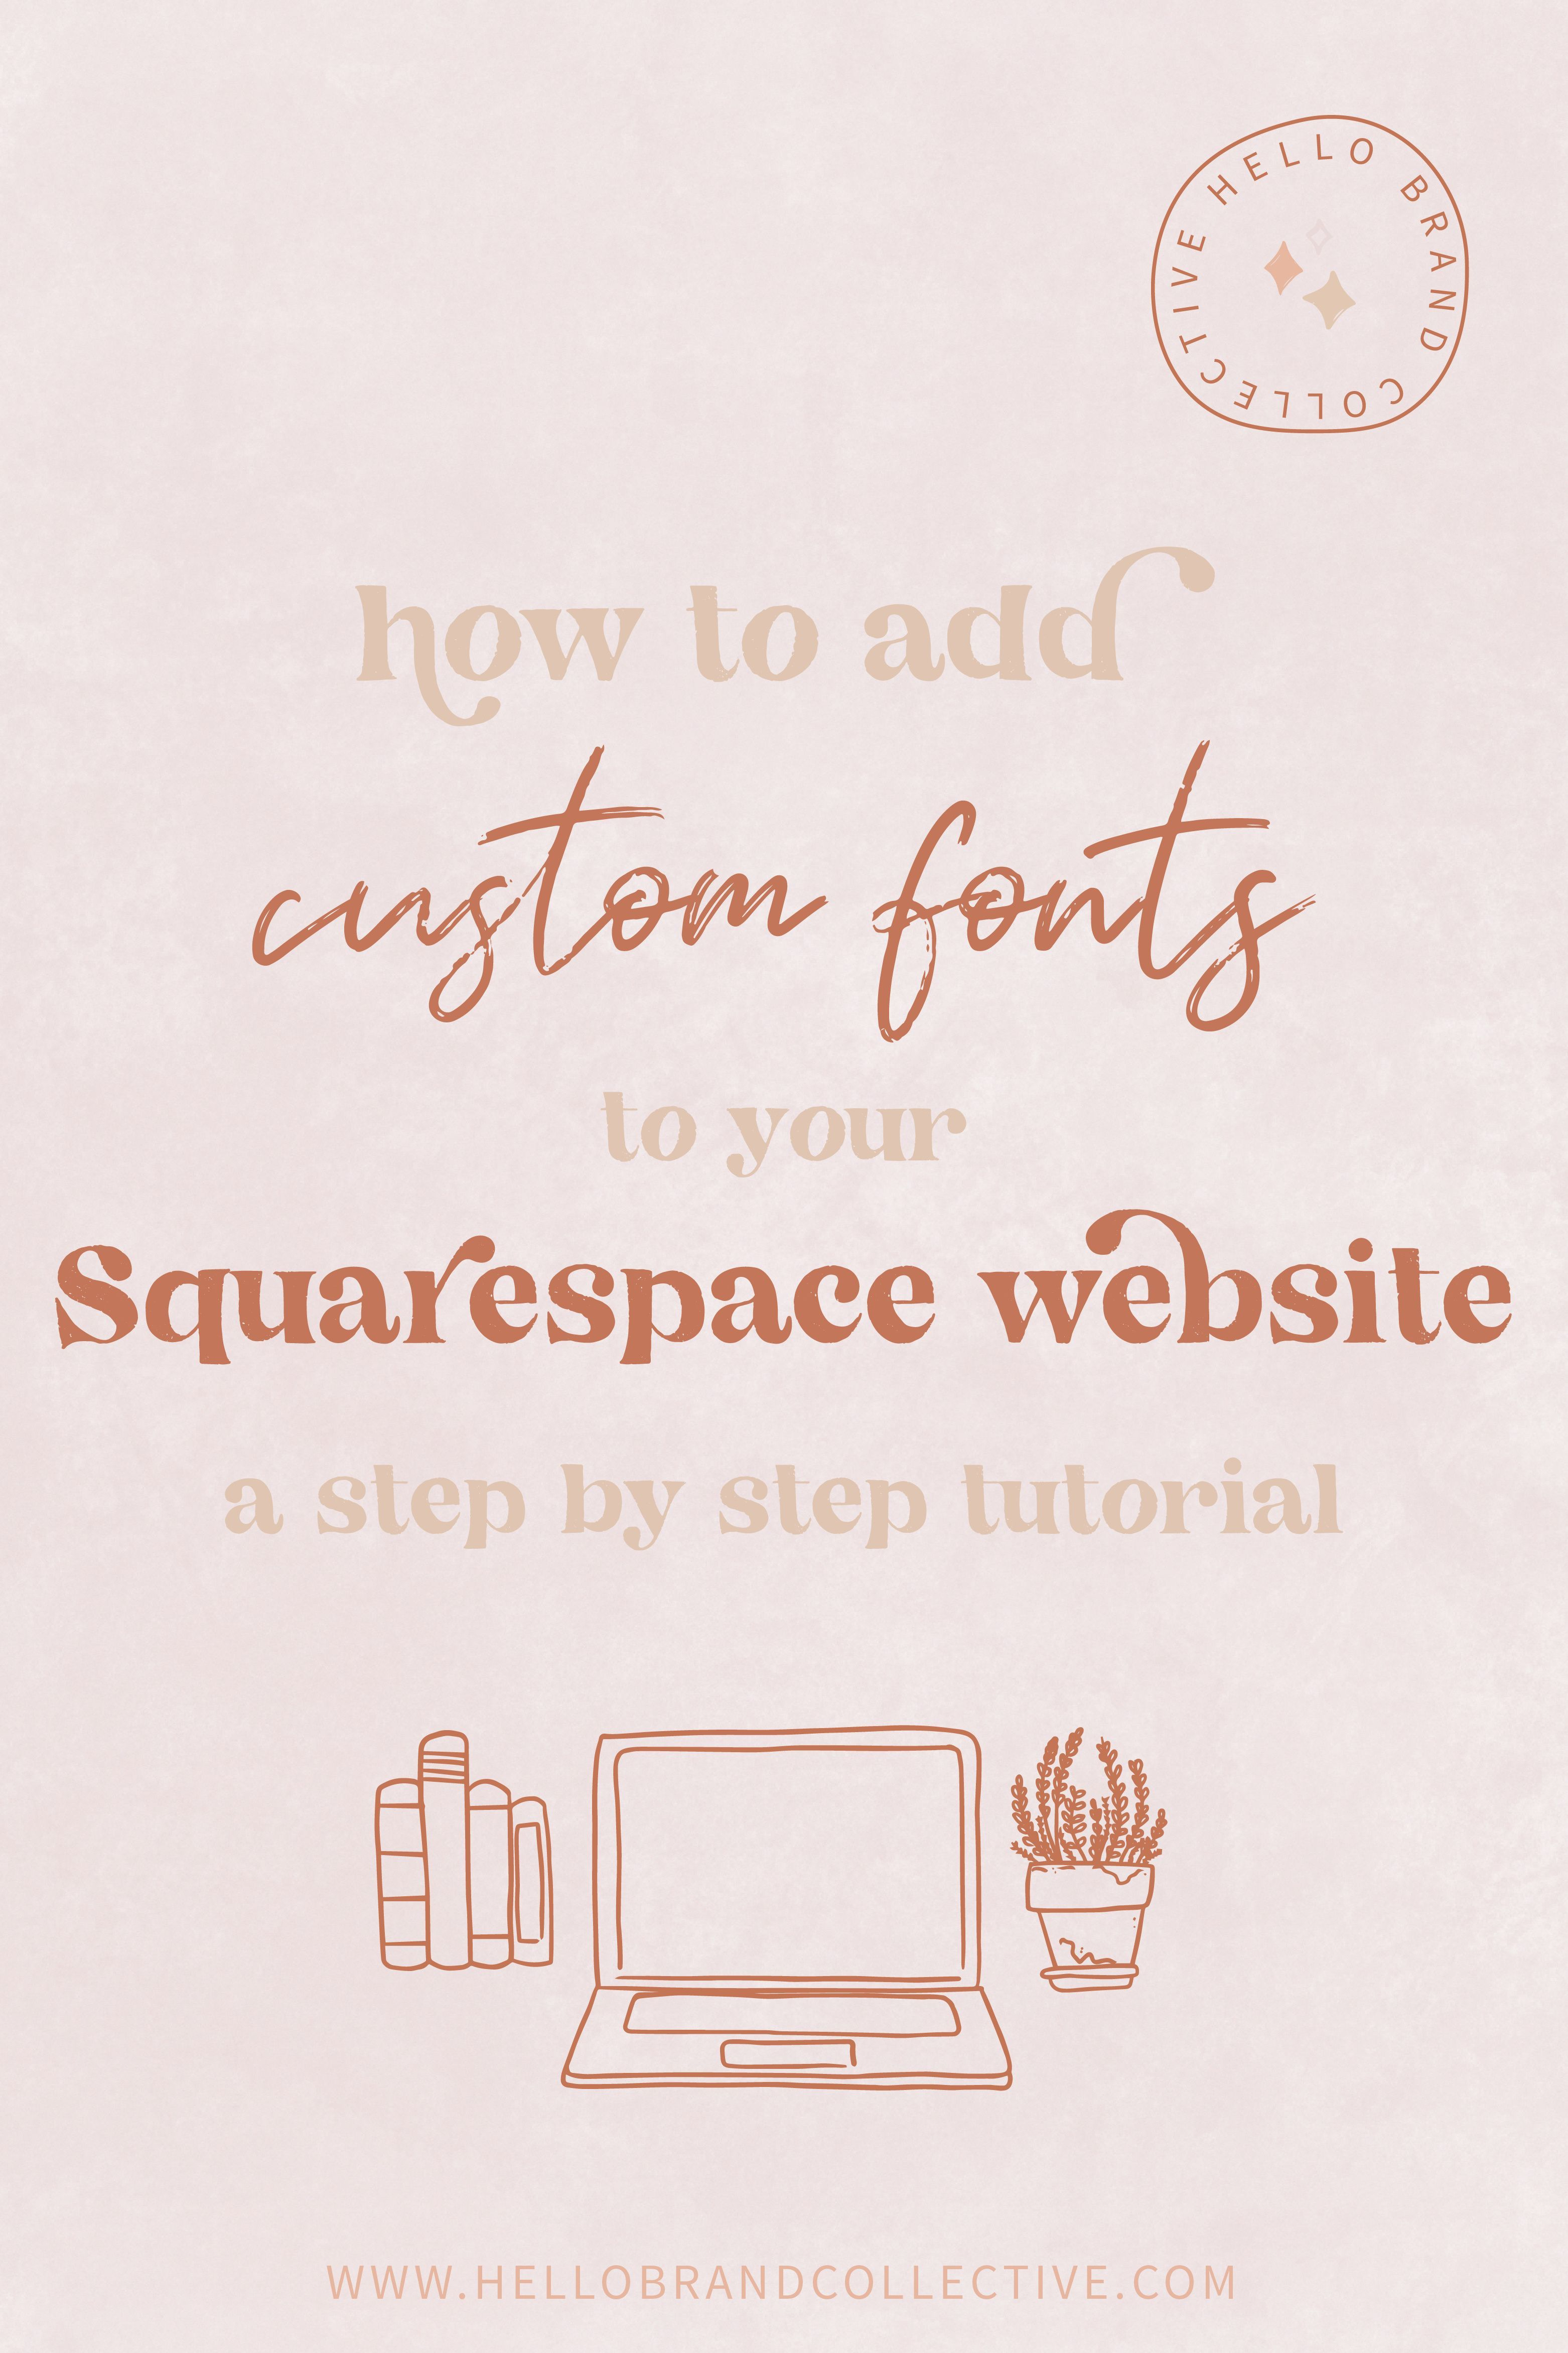 How To Add Custom Fonts To Your Squarespace Website Hello Brand Collective In 2020 Fun Website Design Website Tutorial Squarespace